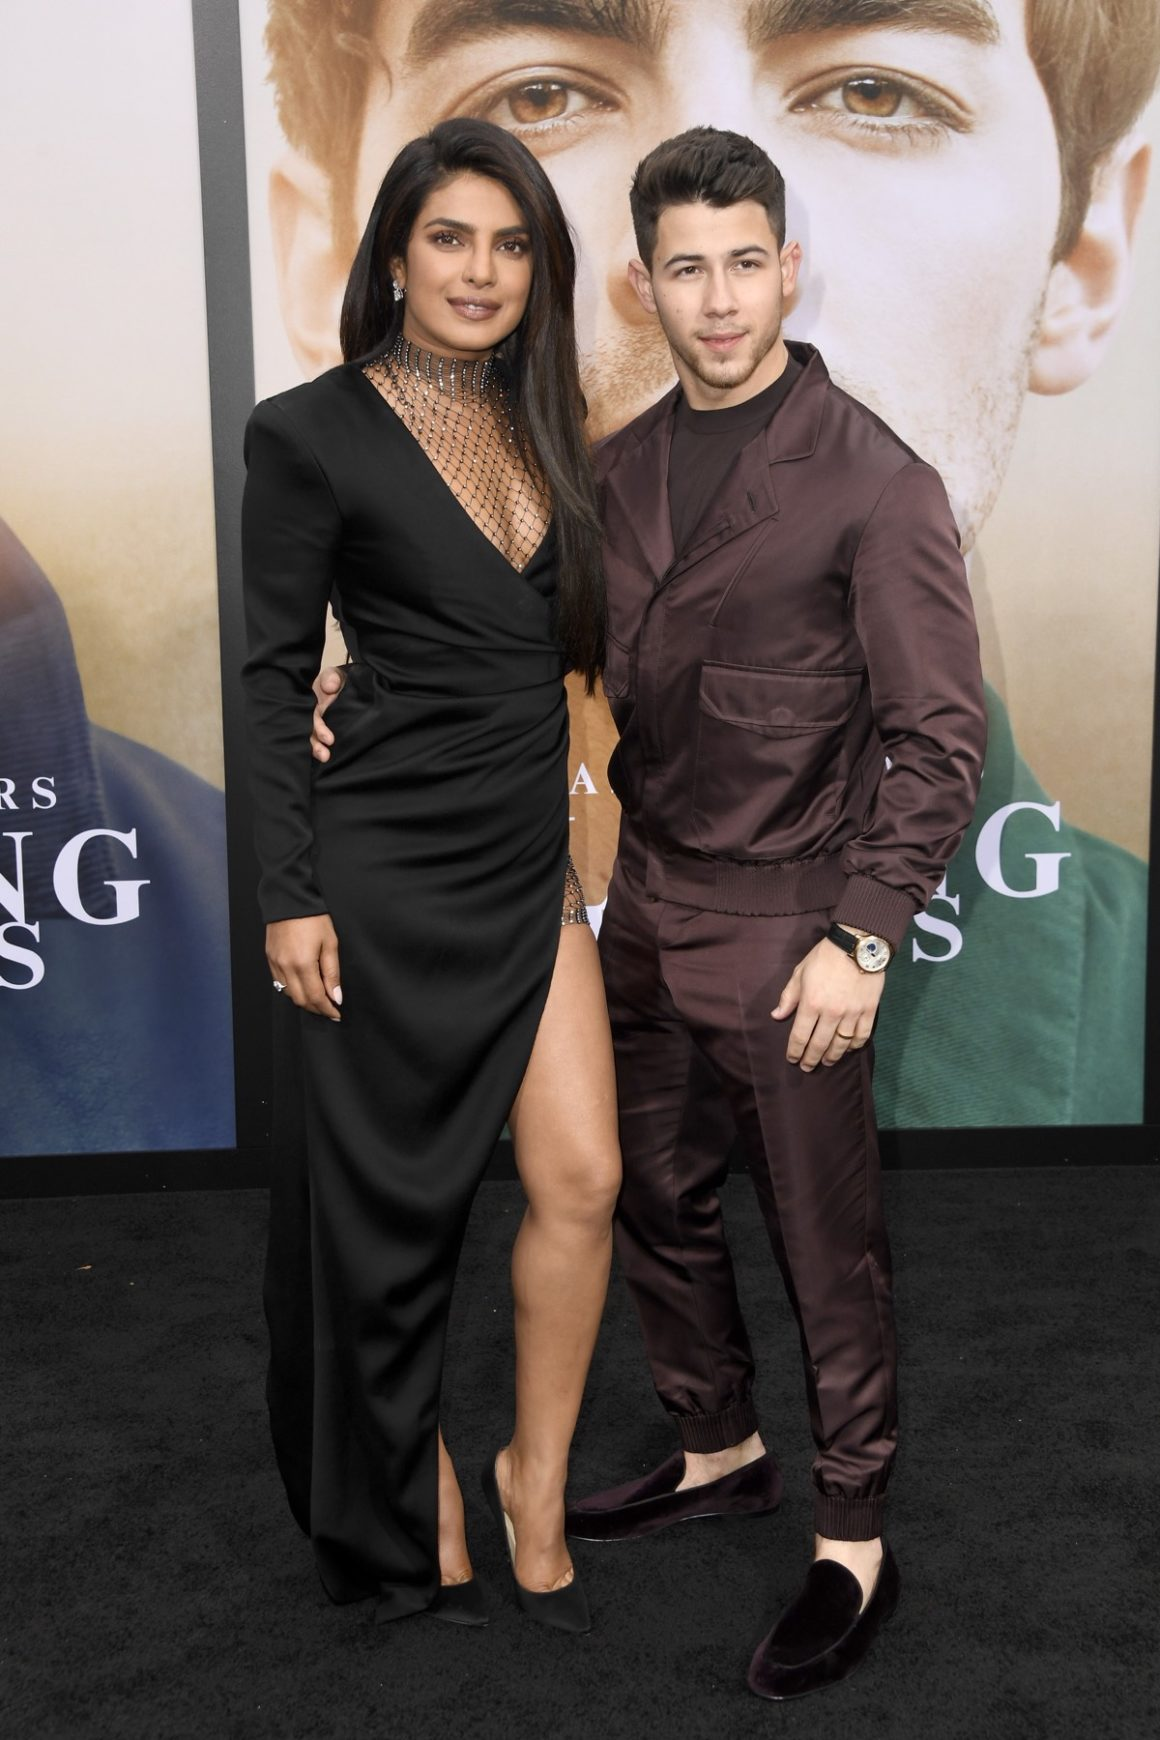 Premiere Of Amazon Prime Video's 'Chasing Happiness' - Arrivals